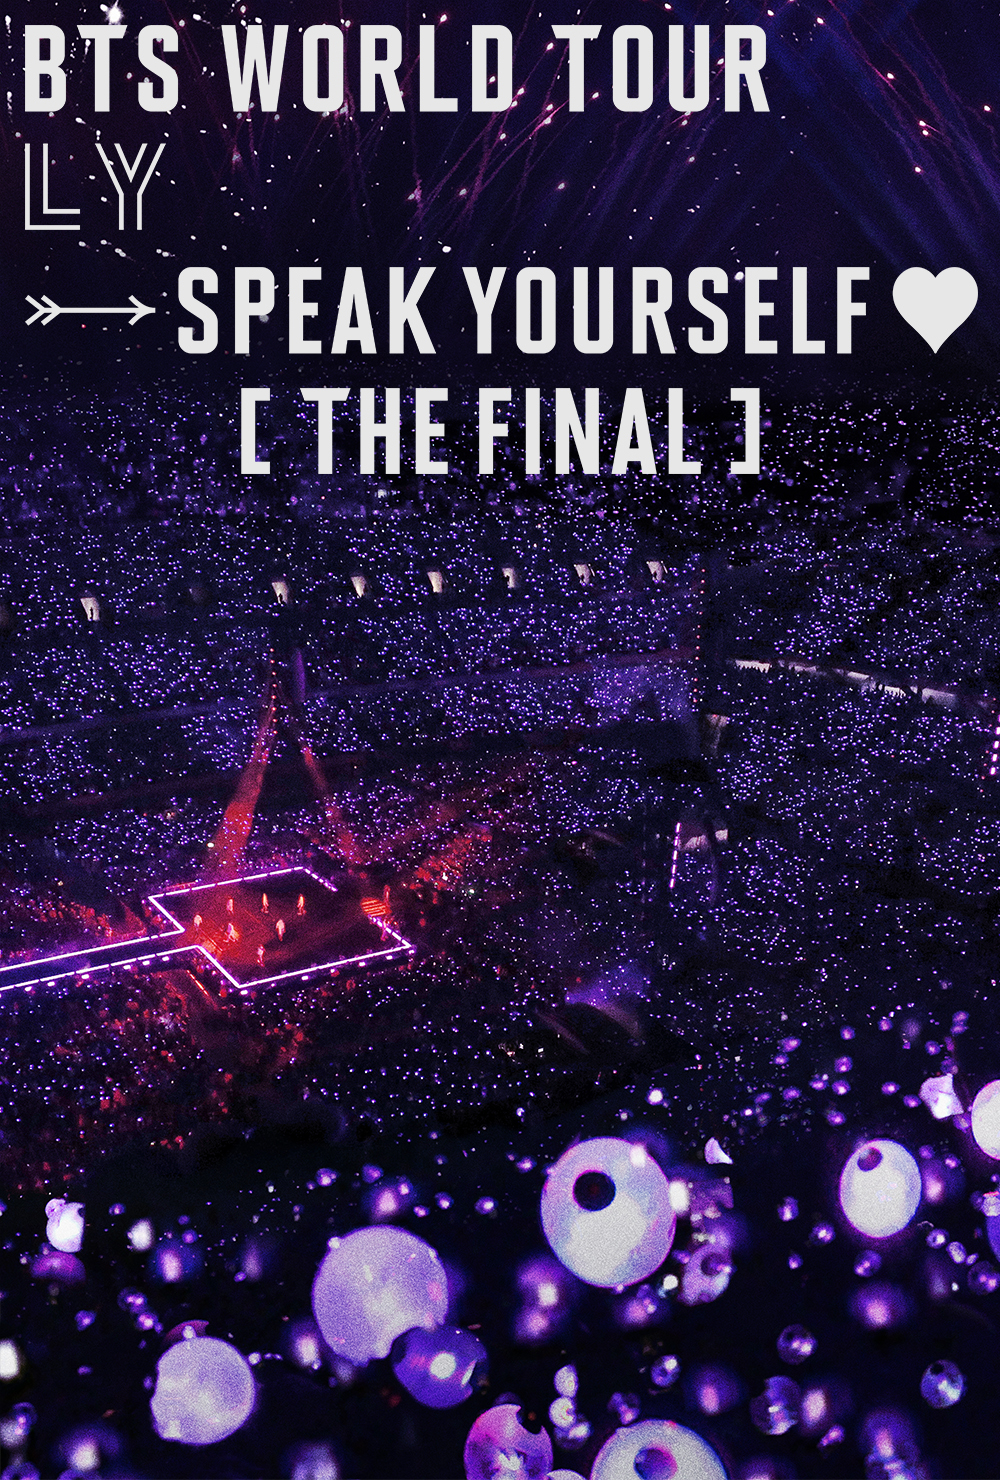 Bts Announce Concert Film Love Yourself Speak Yourself The Final Consequence Of Sound